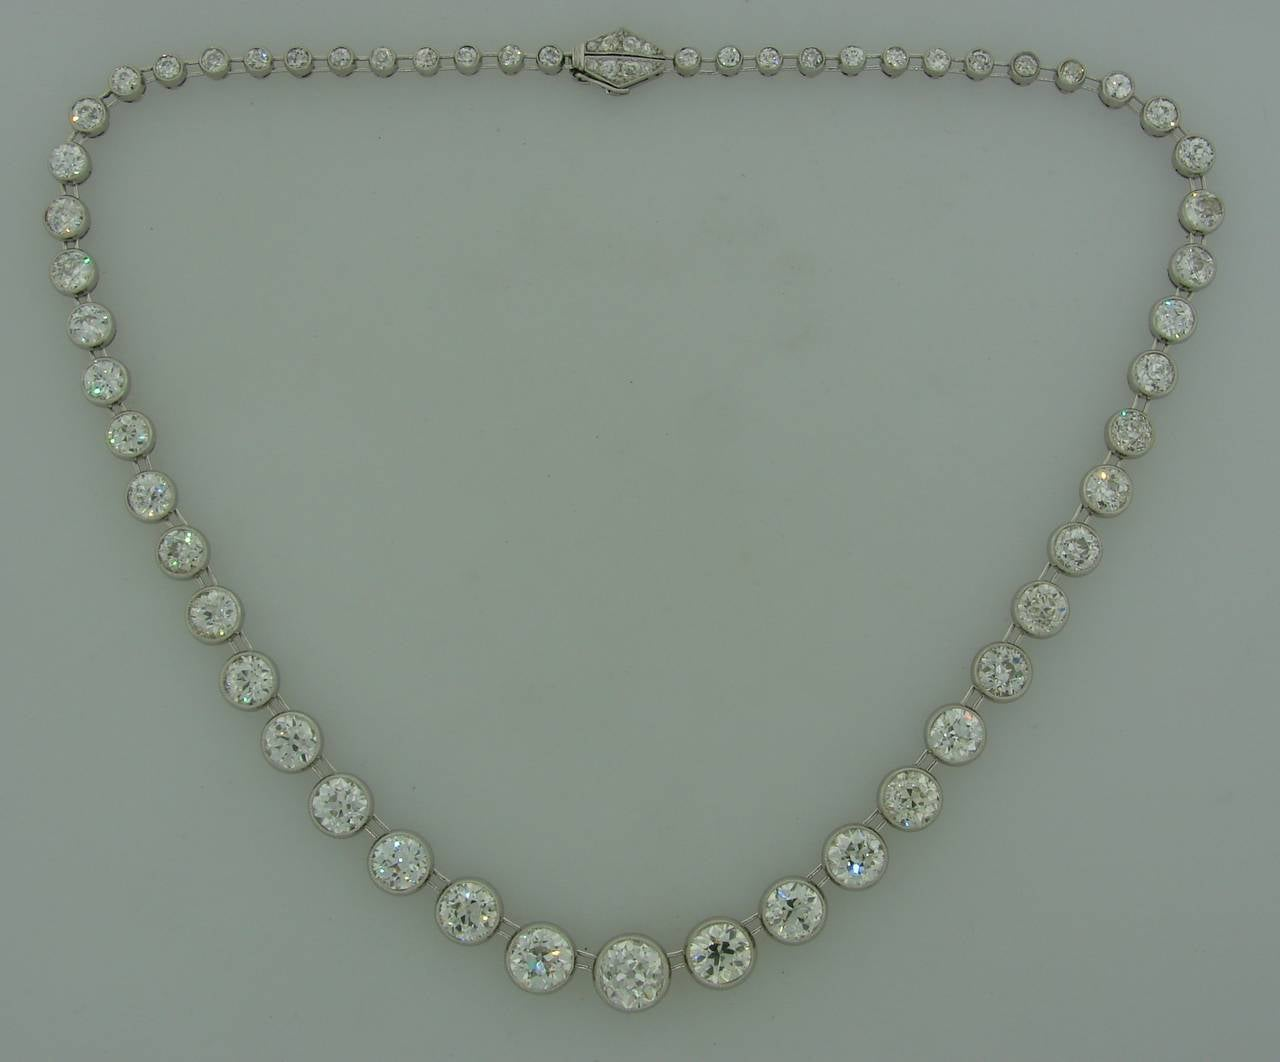 Art Deco 1920s 25 carats Old European Cut Diamond Platinum Riviere Necklace 2